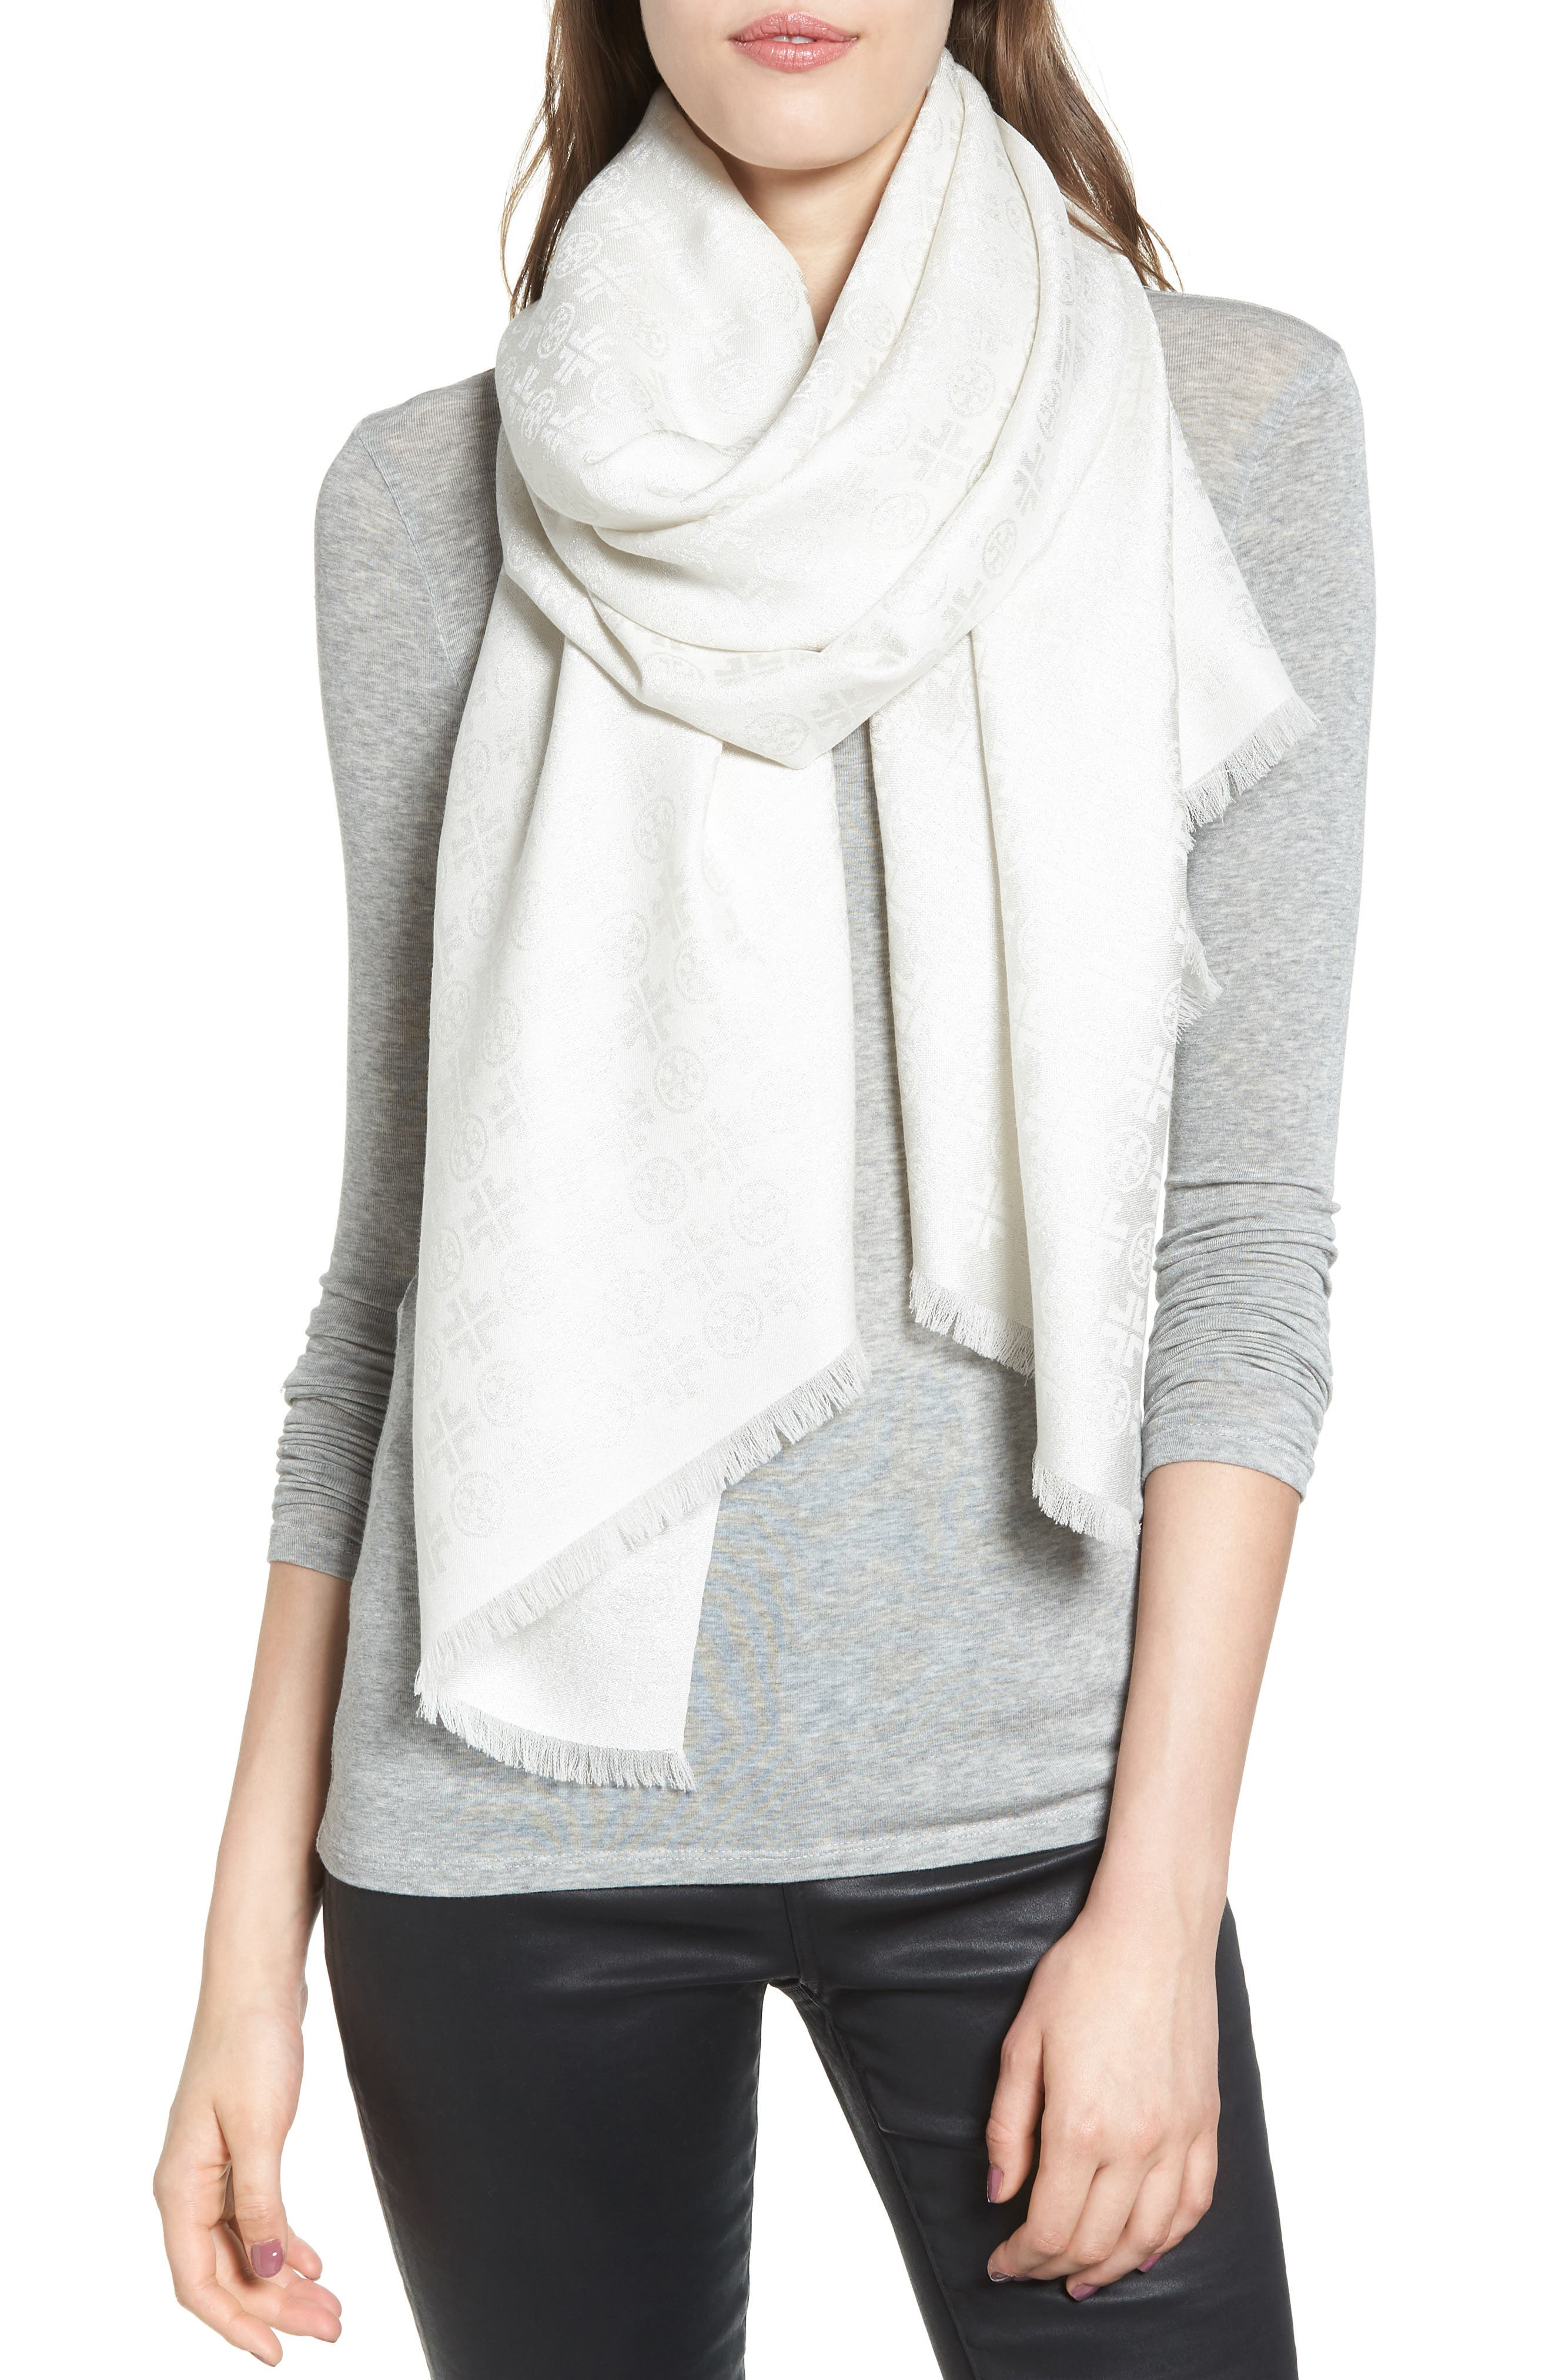 Tory Burch Traveler Jacquard Oblong Scarf